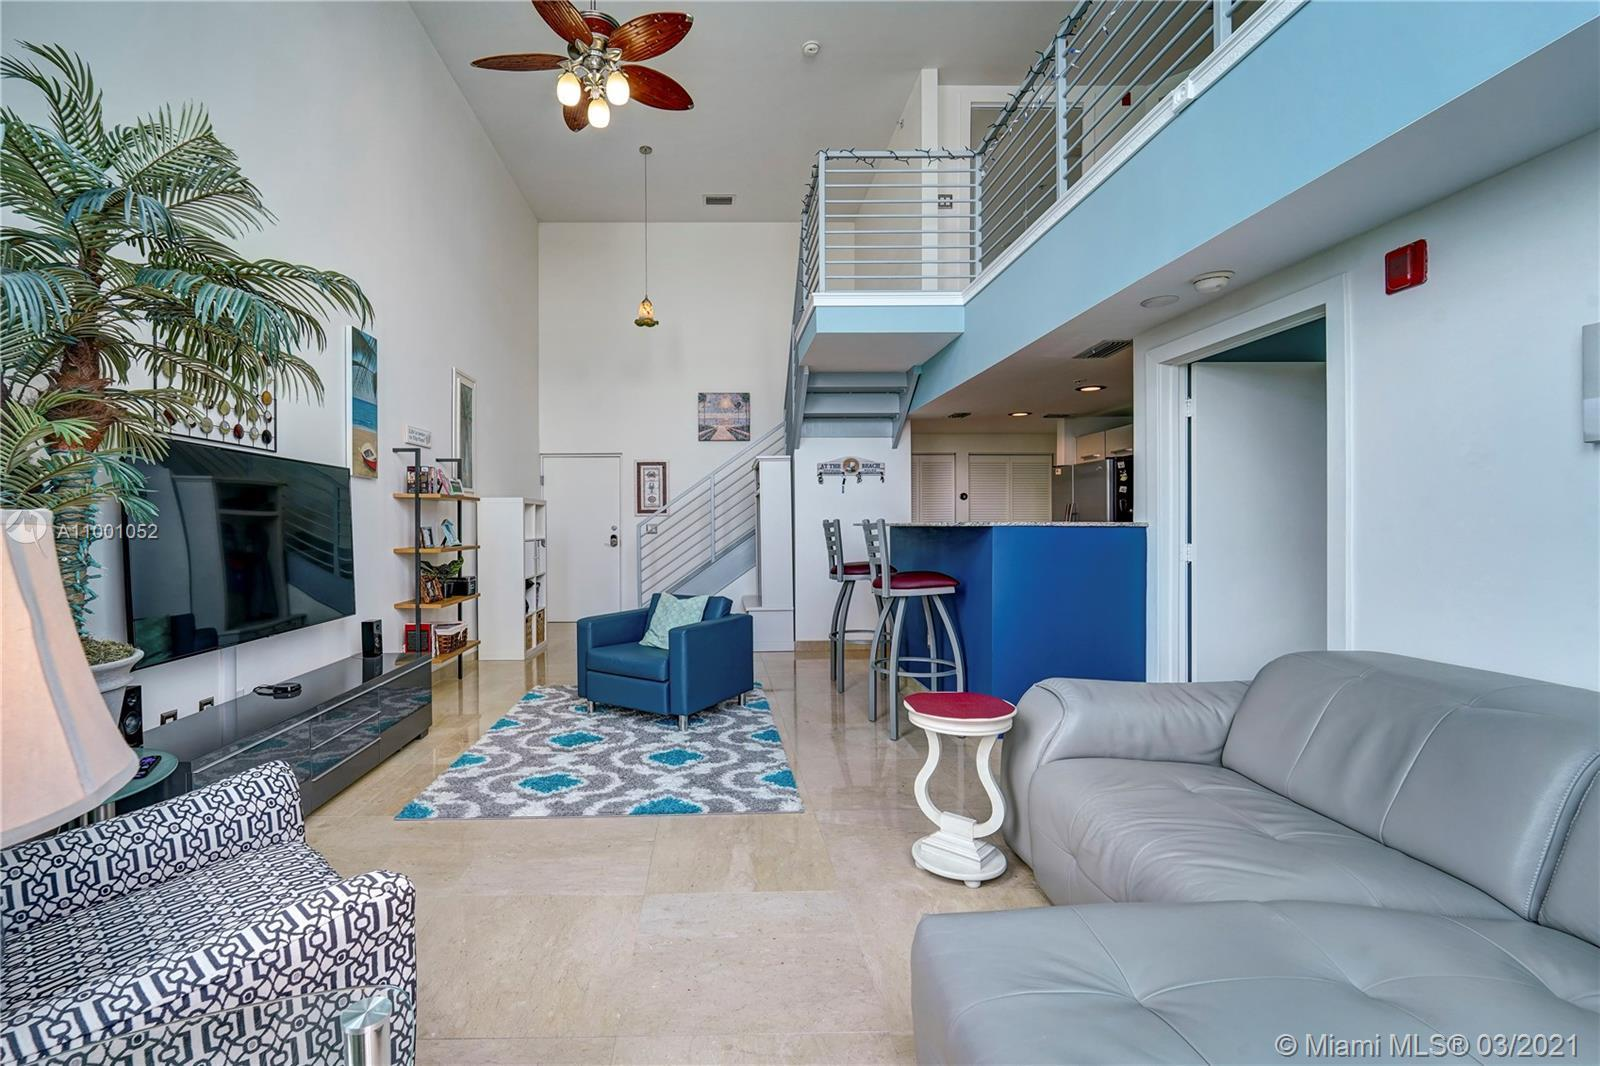 Boutique Building across the Street from the Beach, million dollar homes, Altos Del Mar Park, and th